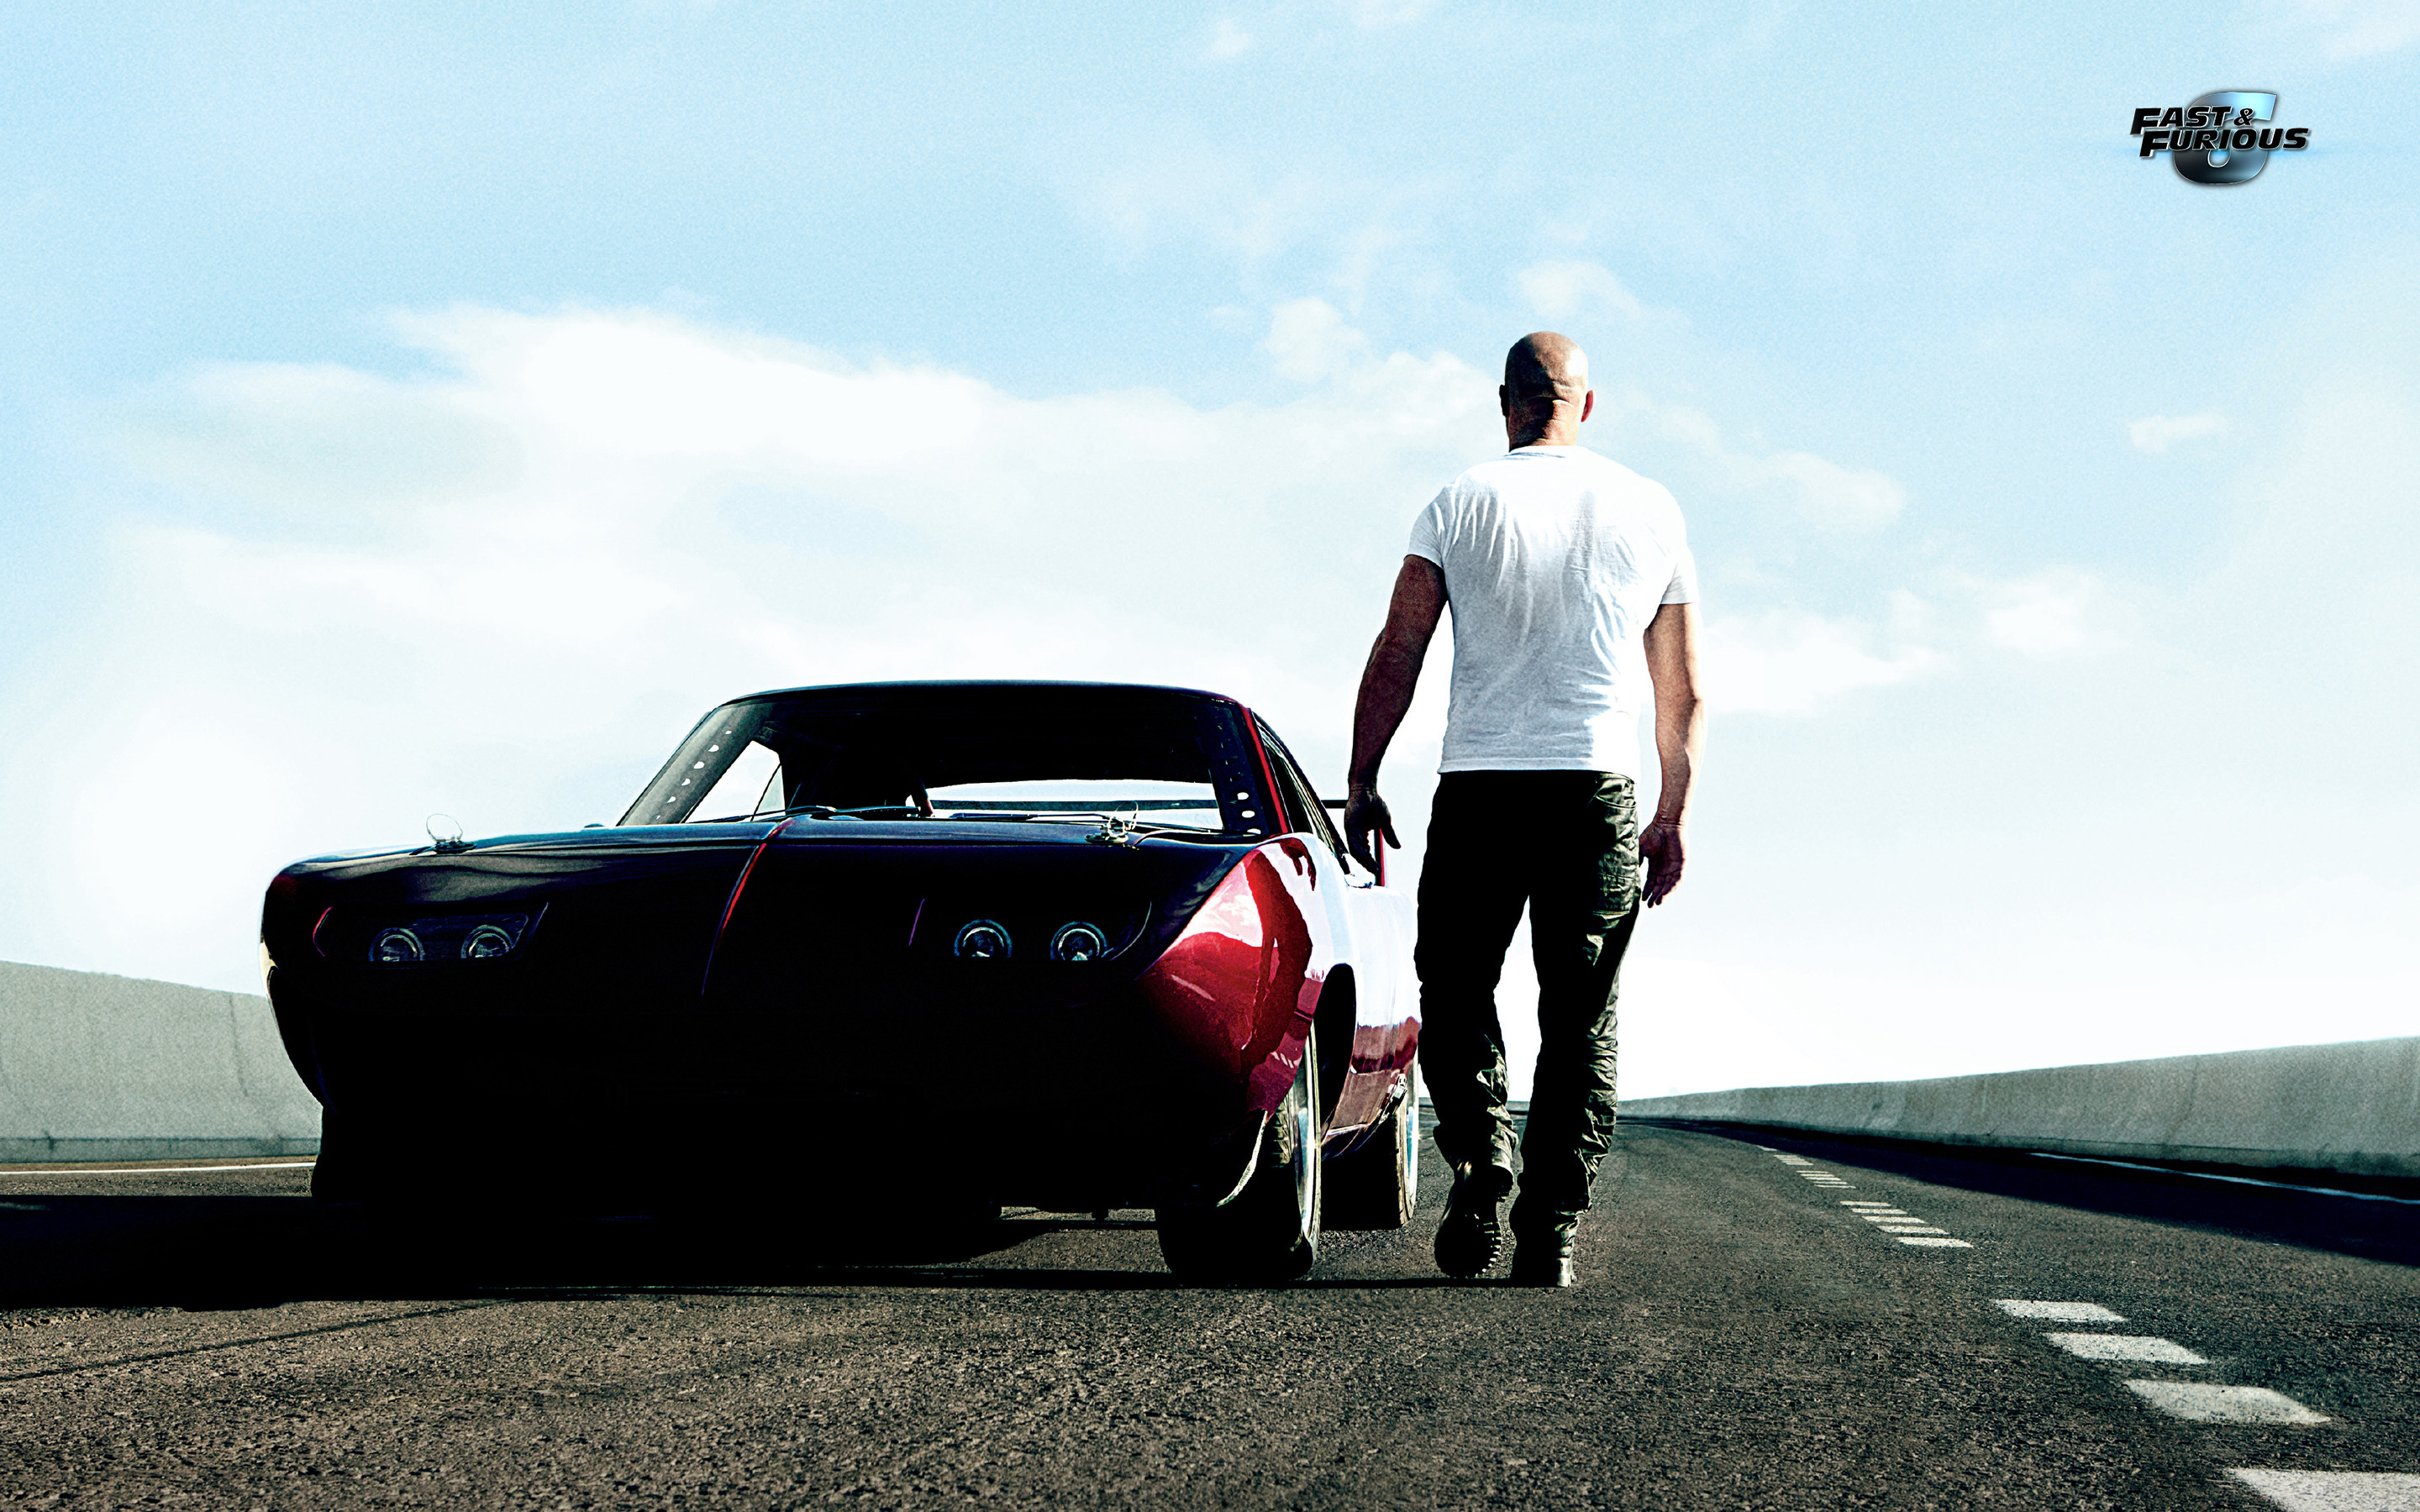 2880x1800 Widescreen Furious Up Full Hd Pics Of Fast And Dodge Charger Wallpaper  Mobile Phones Cefec Fd